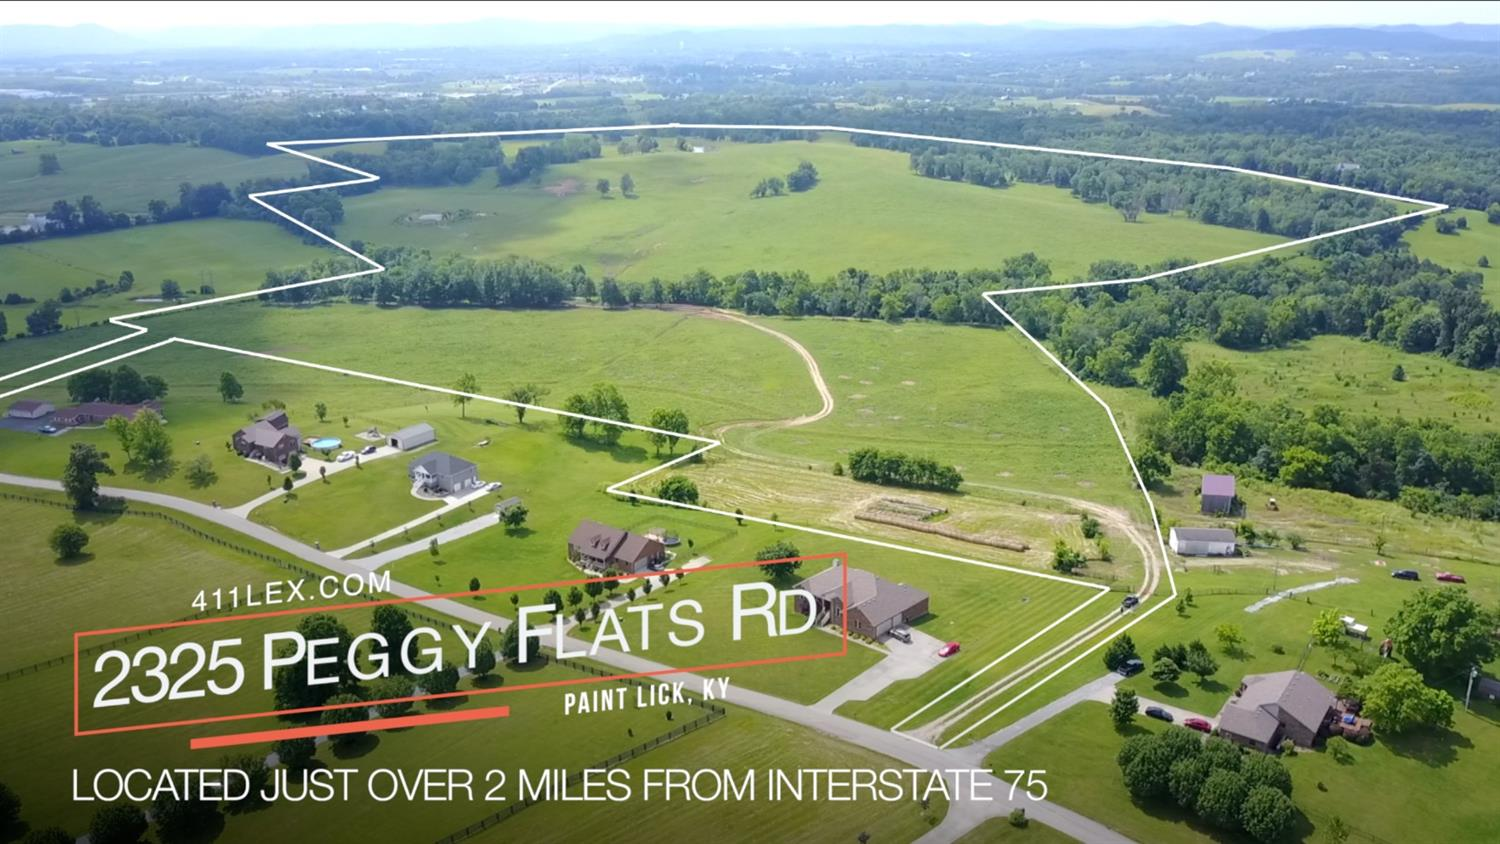 This%20farm%20is%20located%20just%20over%202%20miles%20from%20interstate%2075%20and%20has%20lots%20to%20offer.%20To%20start%20it%20is%20fully%20contained%20by%20a%20combination%20of%20woven%20cattle%20fence%20and%204%20strand%20barb-wire.%20Of%20the%20180.36%20acres%20approximately%2085%%20is%20cleared%20for%20pasture%20with%20the%20other%2015%%20being%20heavily%20wooded.%20This%20farm%20also%20offers%203%20ponds%20that%20never%20go%20dry%20and%20two%20automatic%20waterers.%20This%20gently%20rolling%20farm%20is%20easily%20accessible%20and%20can%20be%20driven%20in%20its%20entirety.%20Call%20us%20today%20to%20set%20up%20your%20private%20showing%20and%20to%20get%20a%20copy%20of%20the%20soil%20map!